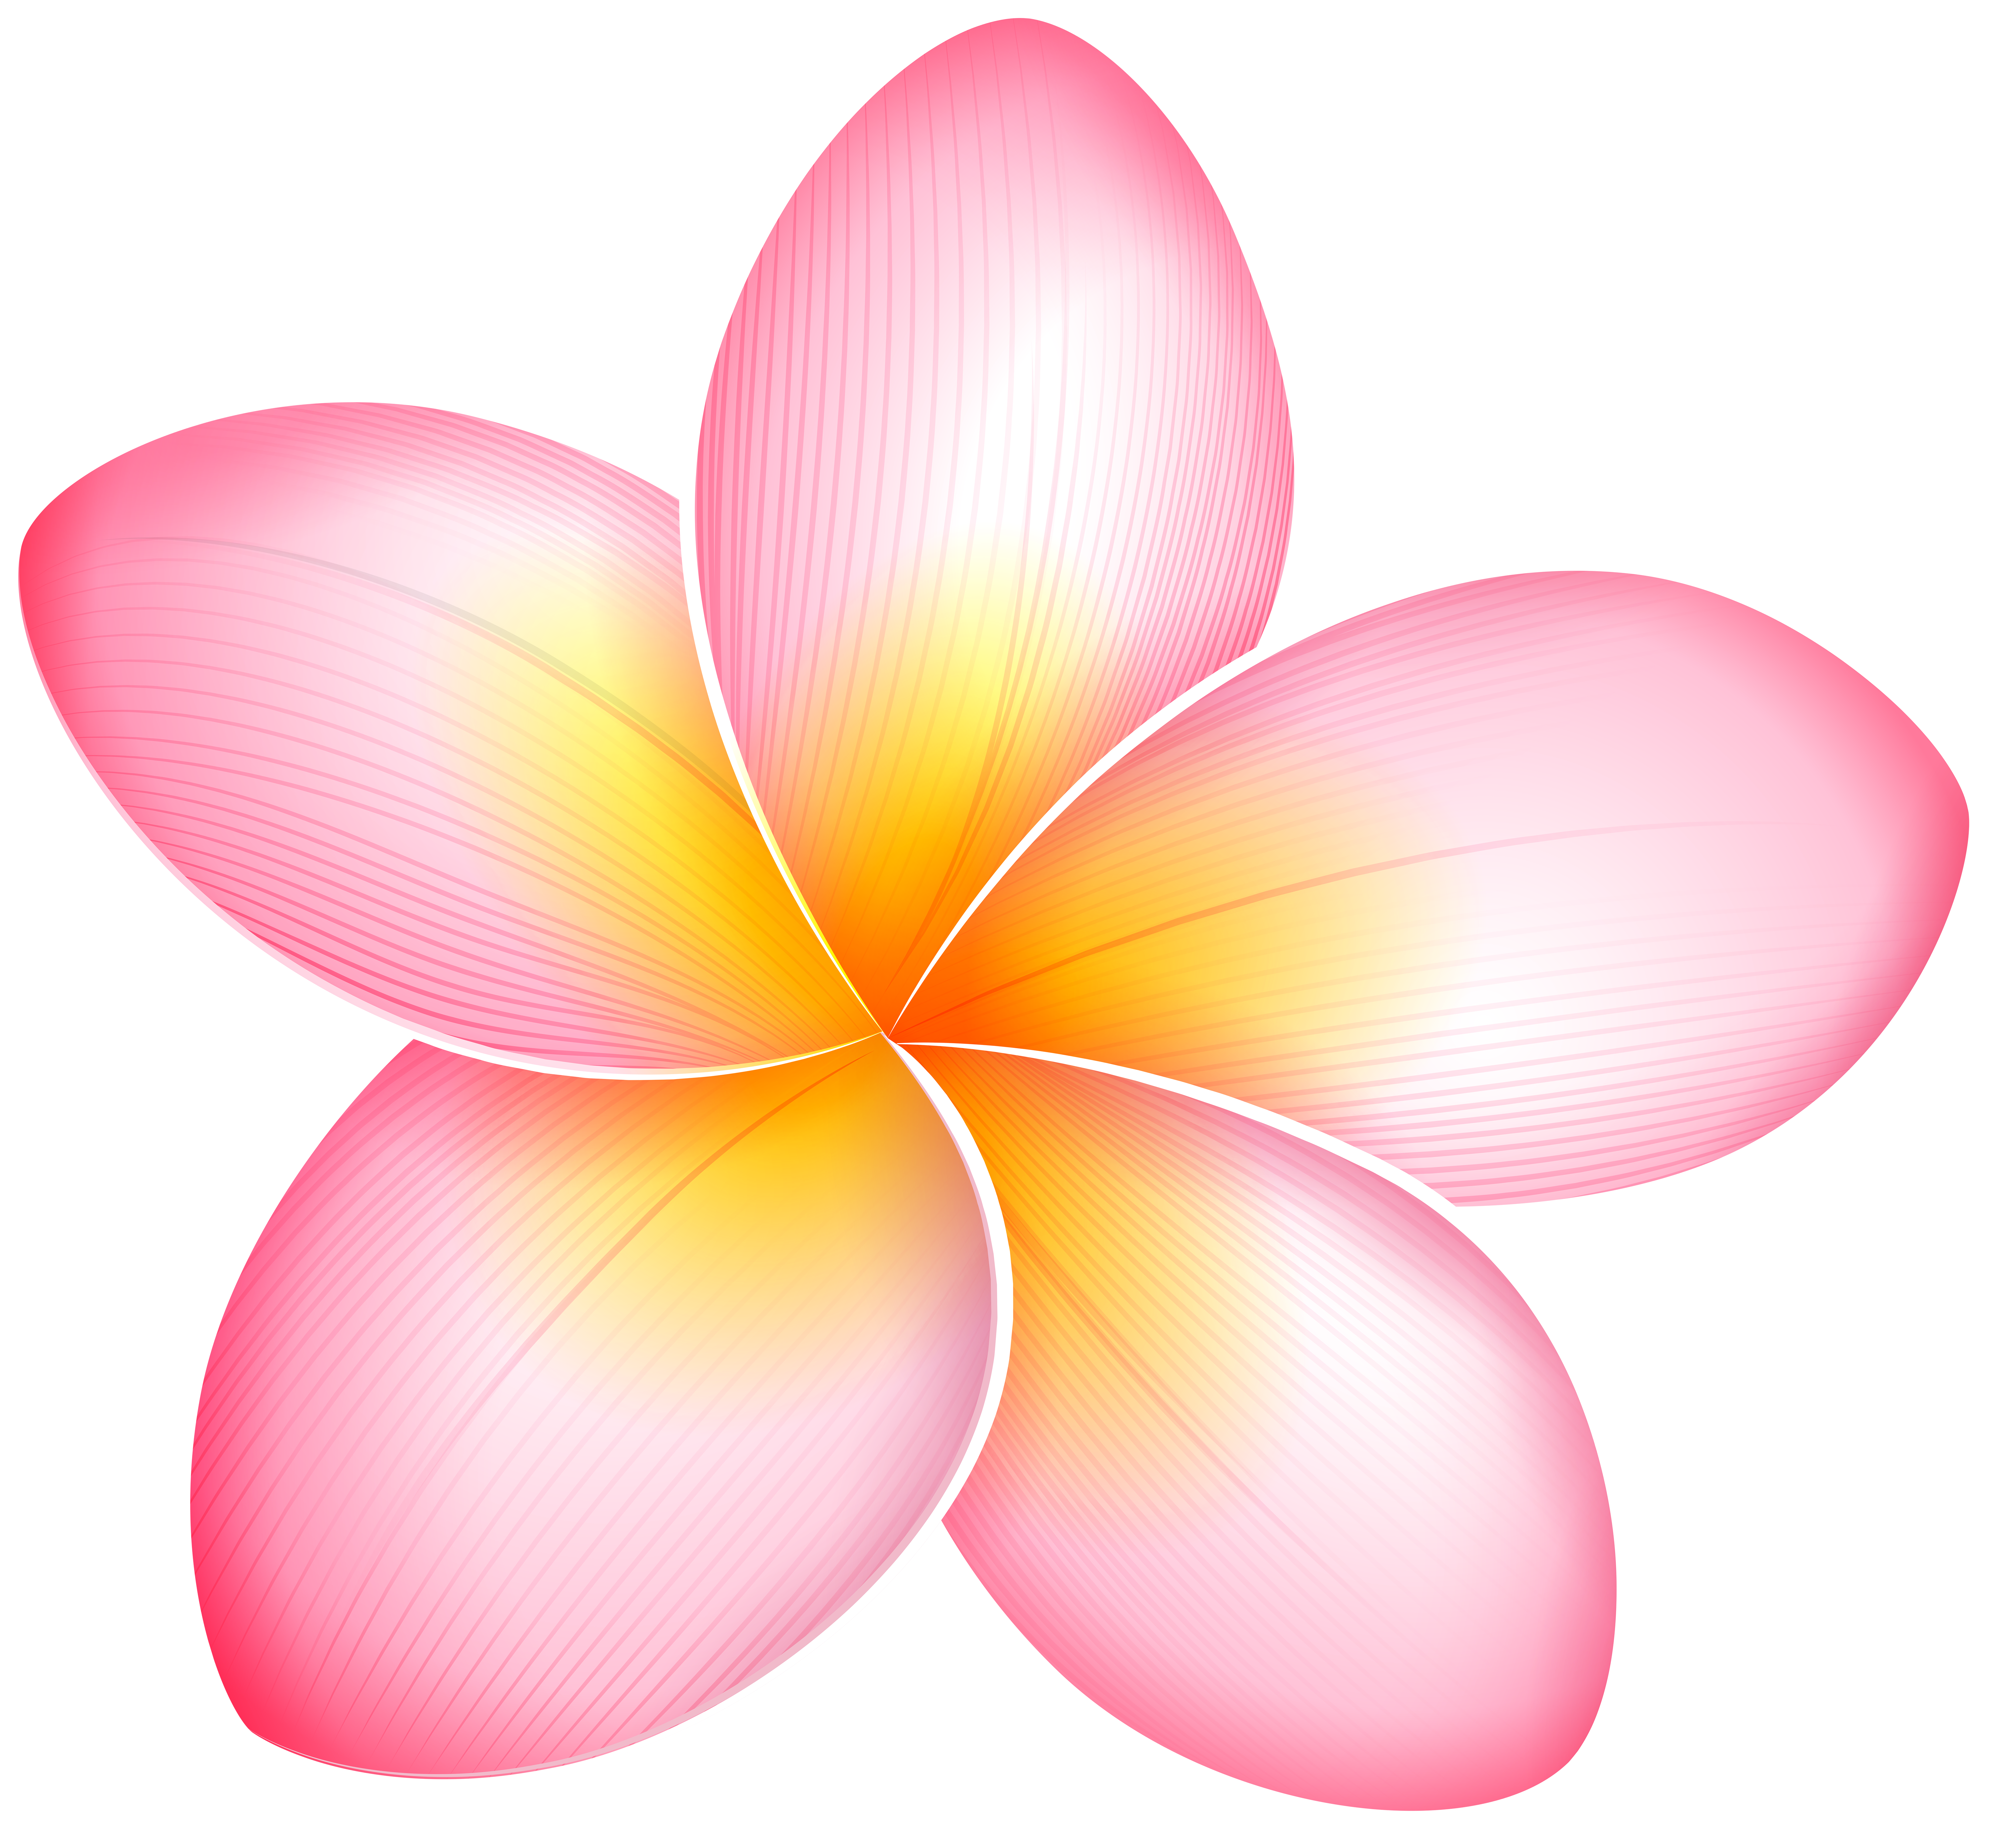 jpg Flowers clipart name. Pink exotic flower png